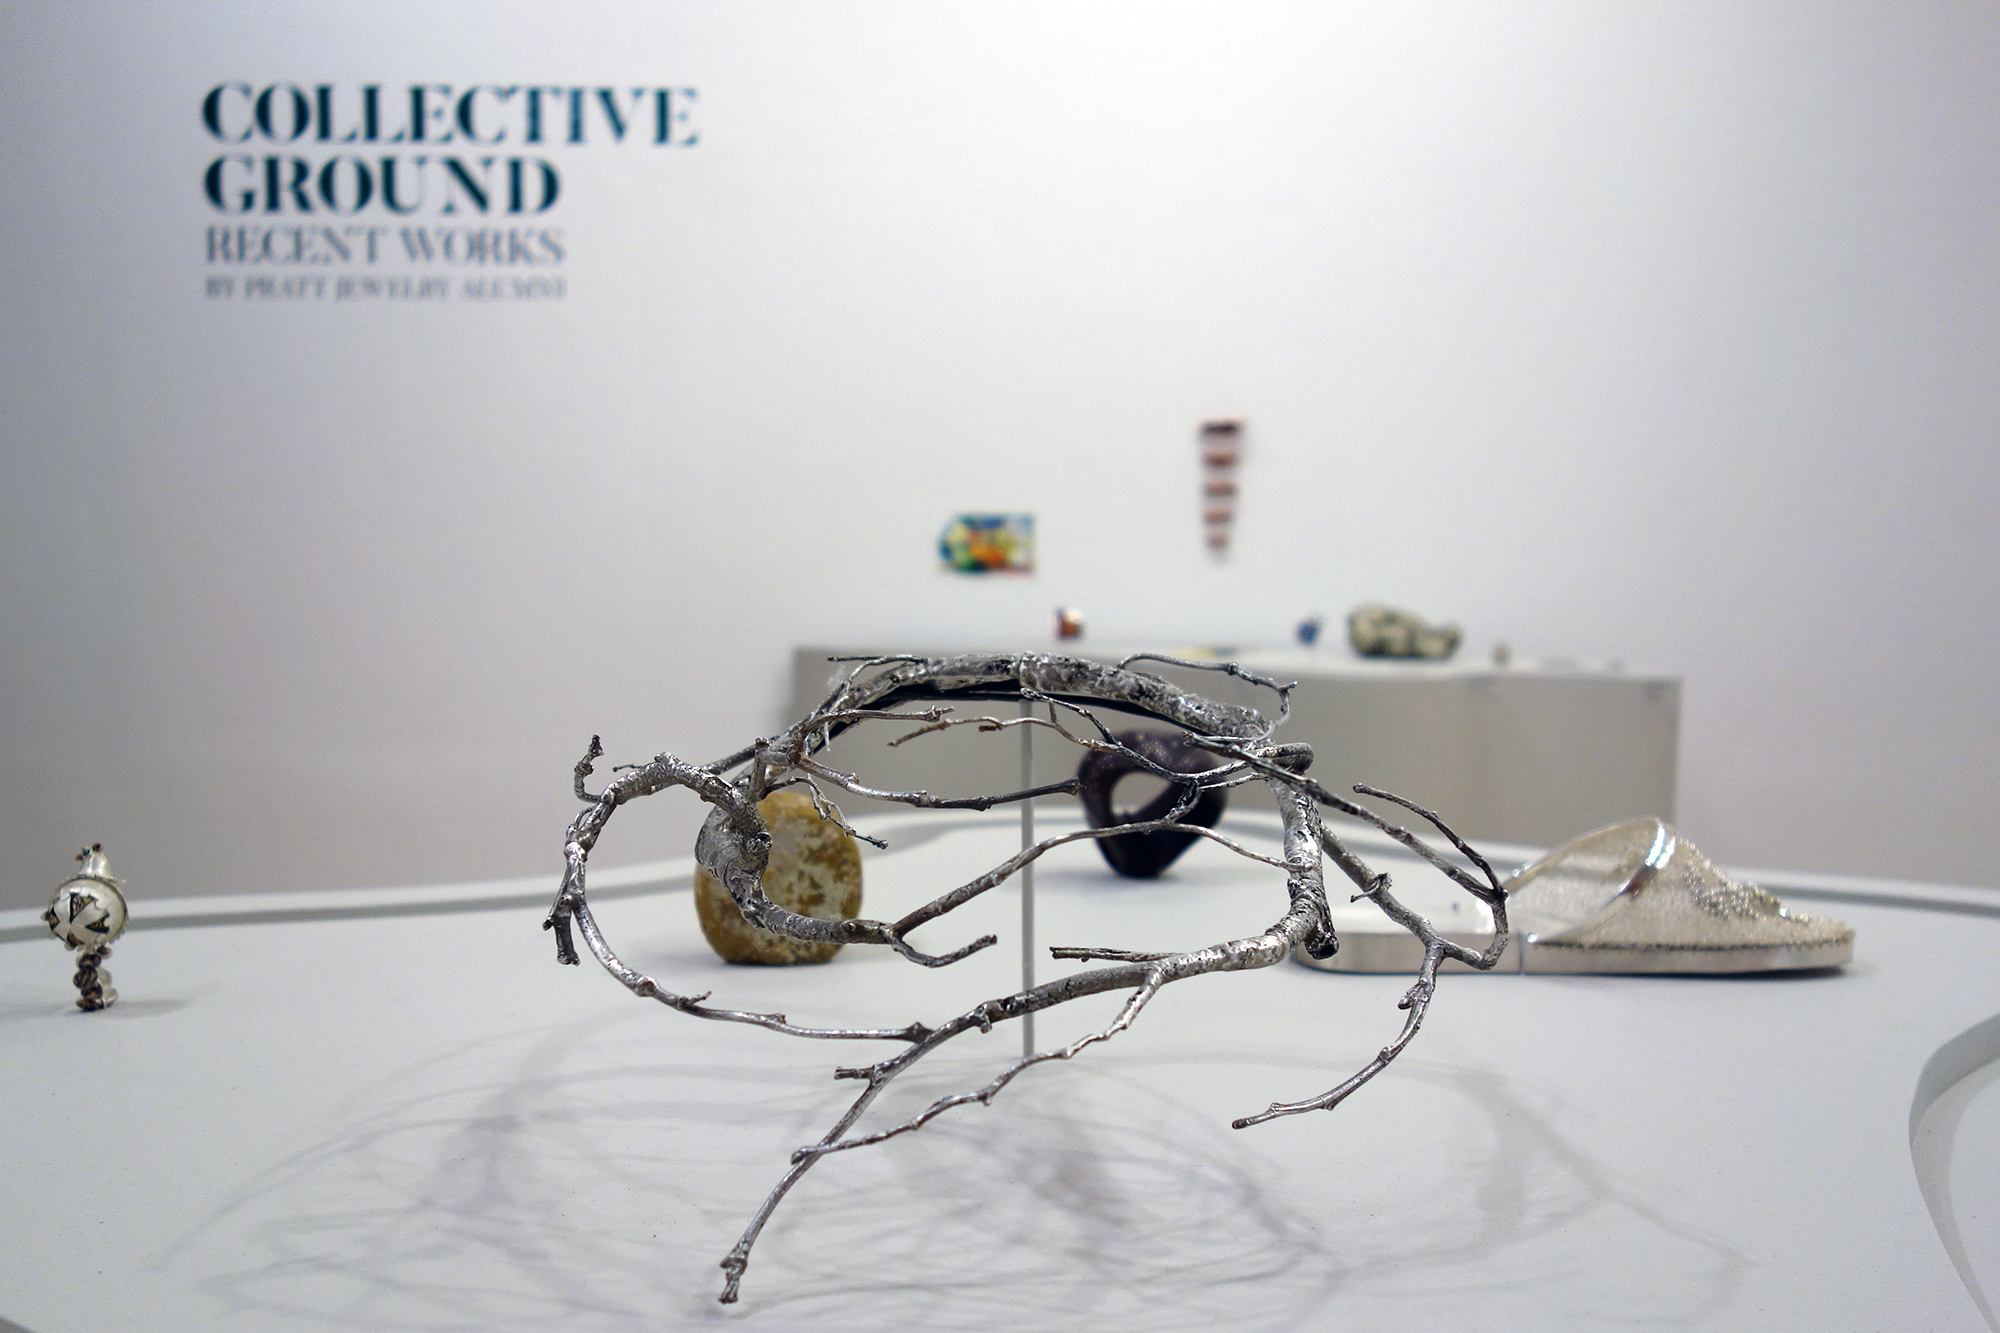 Installation view of Collective Ground at Steuben Gallery, with work by Carrie Bilbo at center